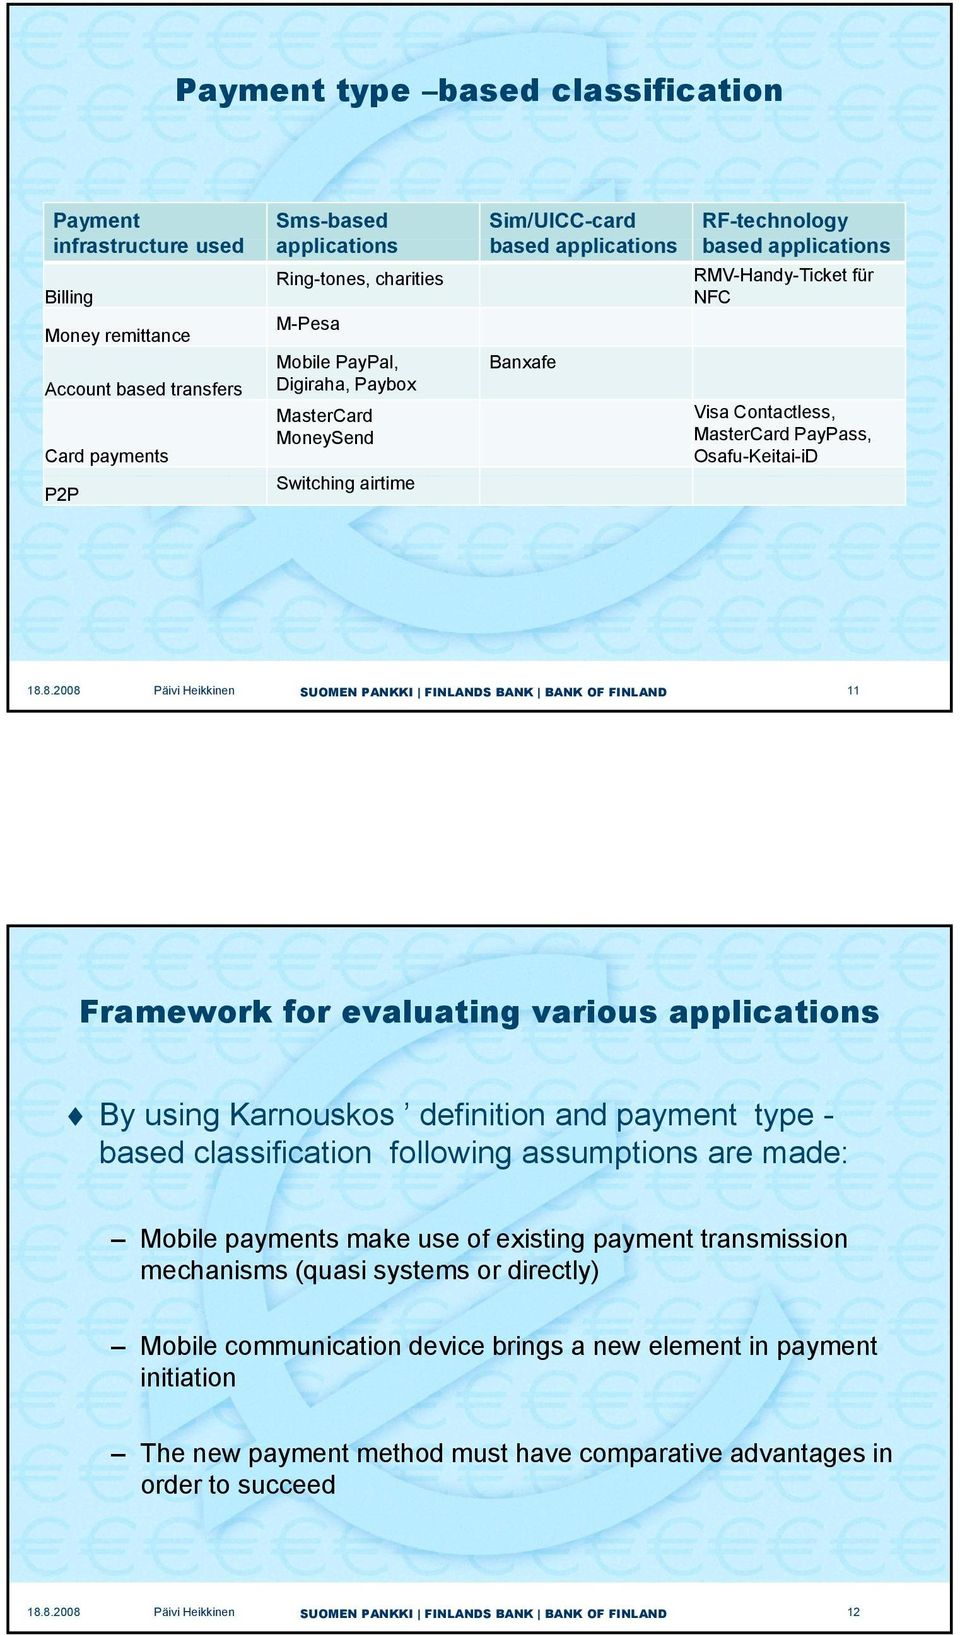 Osafu-Keitai-iD 11 Framework for evaluating various applications By using Karnouskos definition and payment type - based classification following assumptions are made: Mobile payments make use of